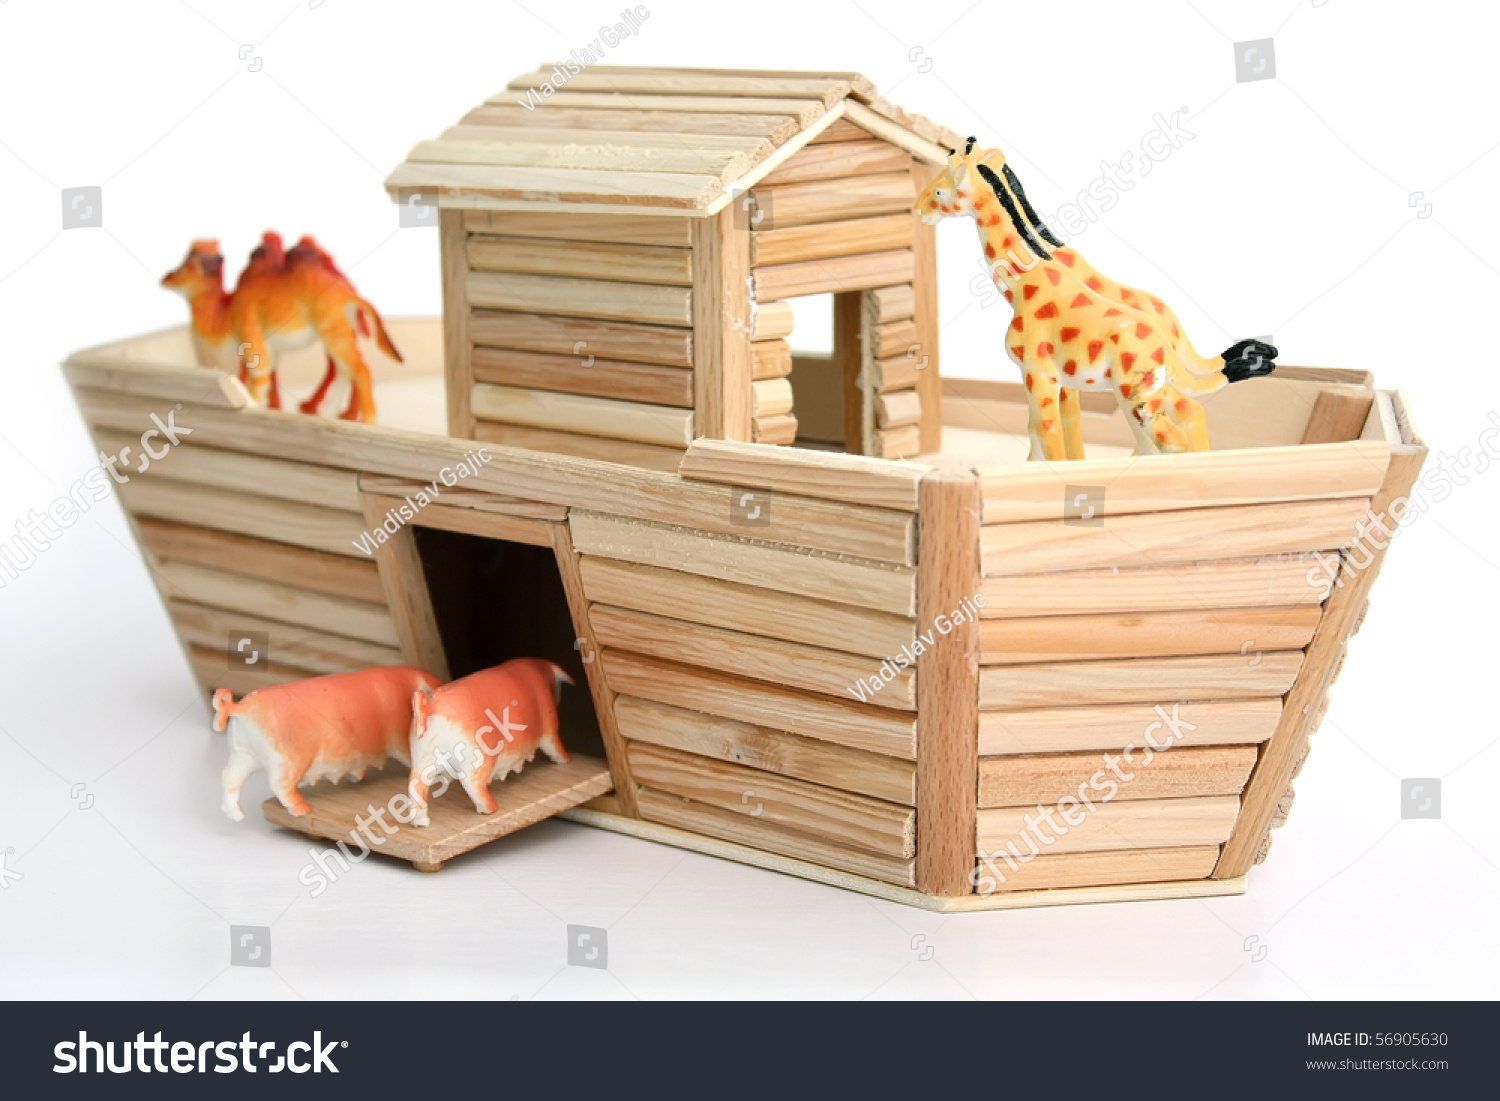 How To Build Noah S Ark With Popsicle Sticks